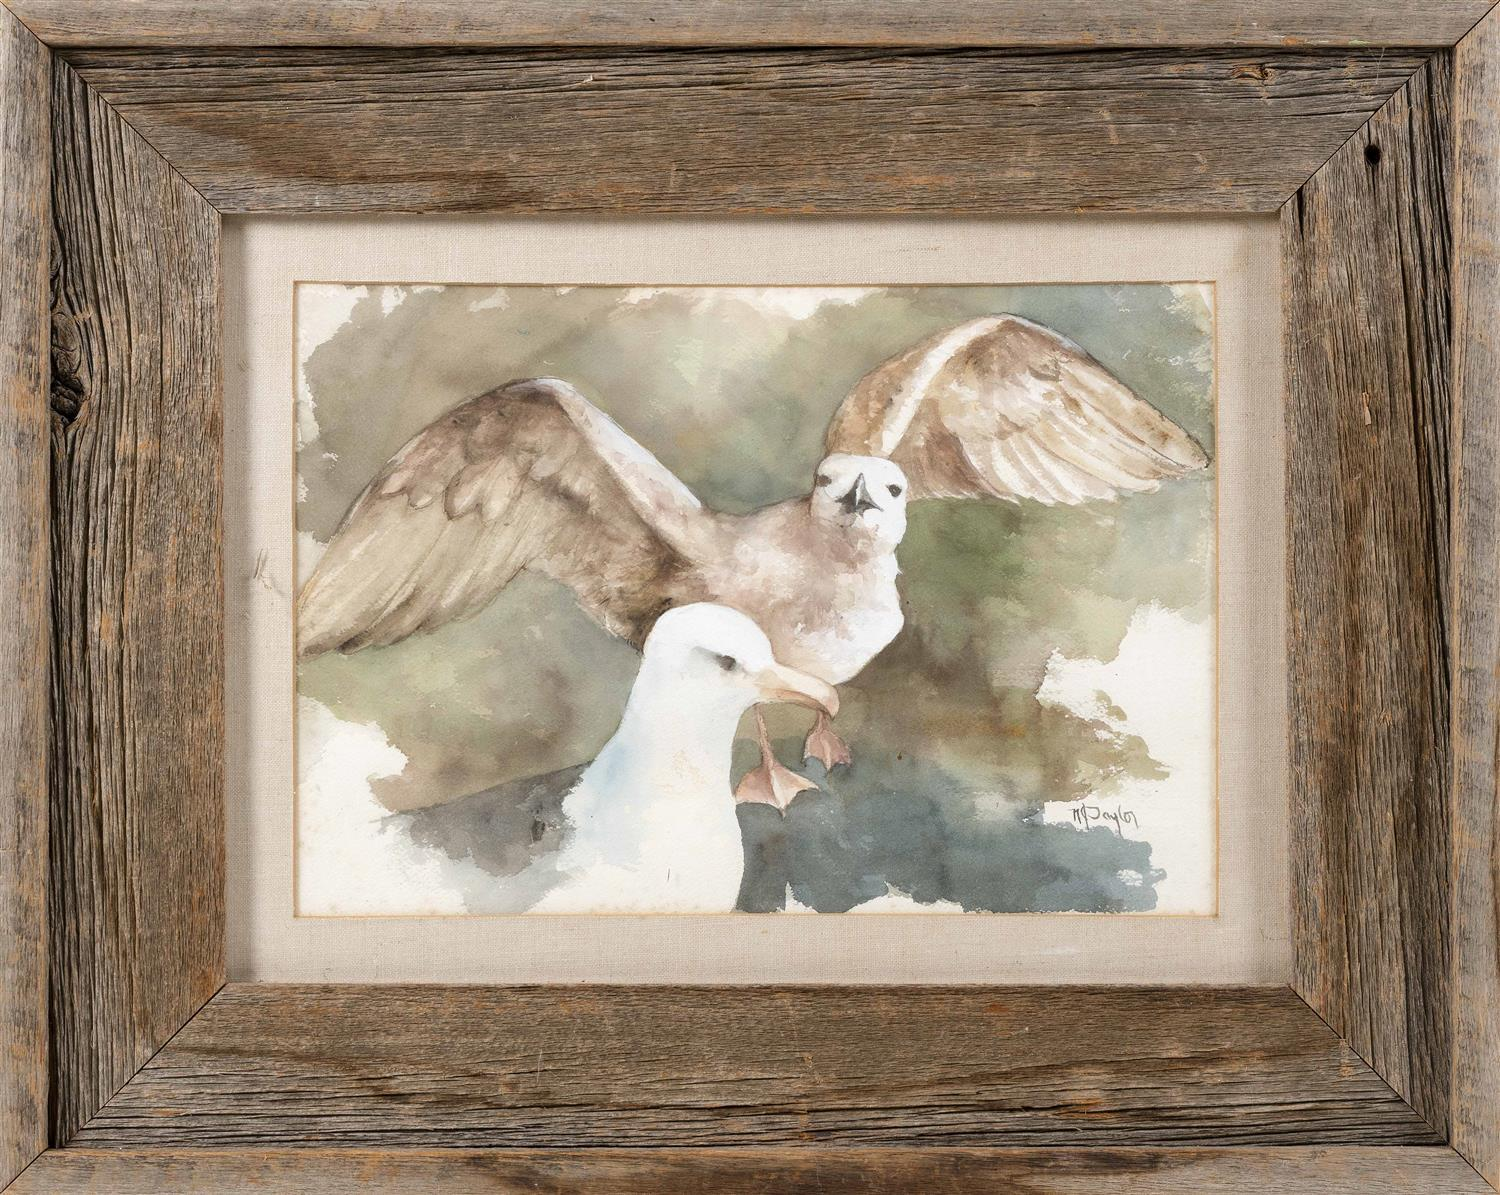 """N. TAYLOR, Provincetown, Massachusetts, 20th Century, Two gulls., Watercolor on paper, 10.5"""" x 15.5"""" sight. Framed 20"""" x 26""""."""